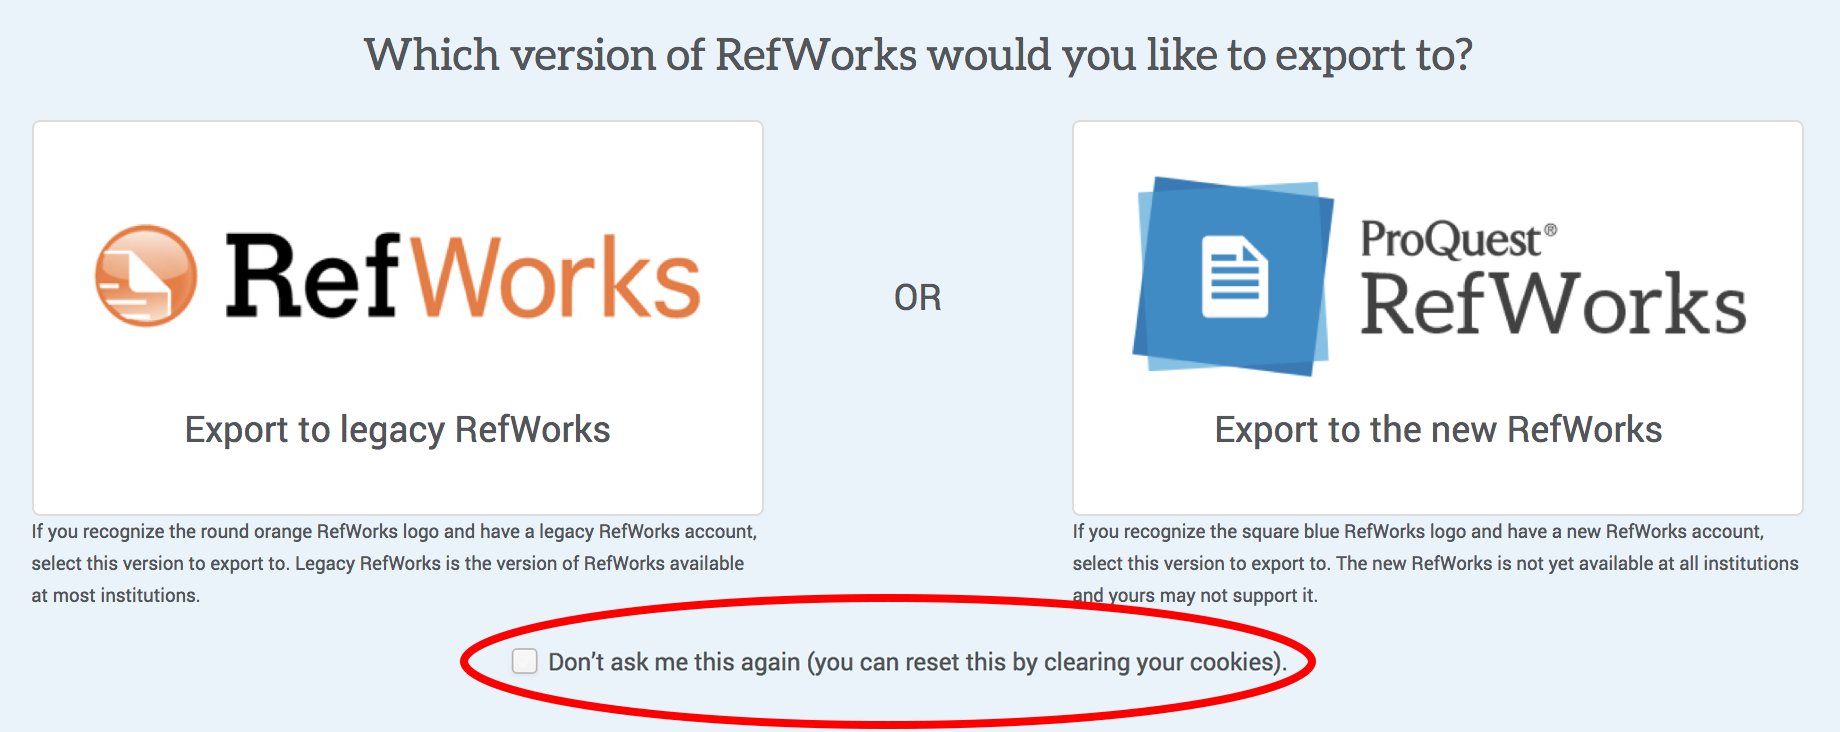 Choose which version of RefWorks